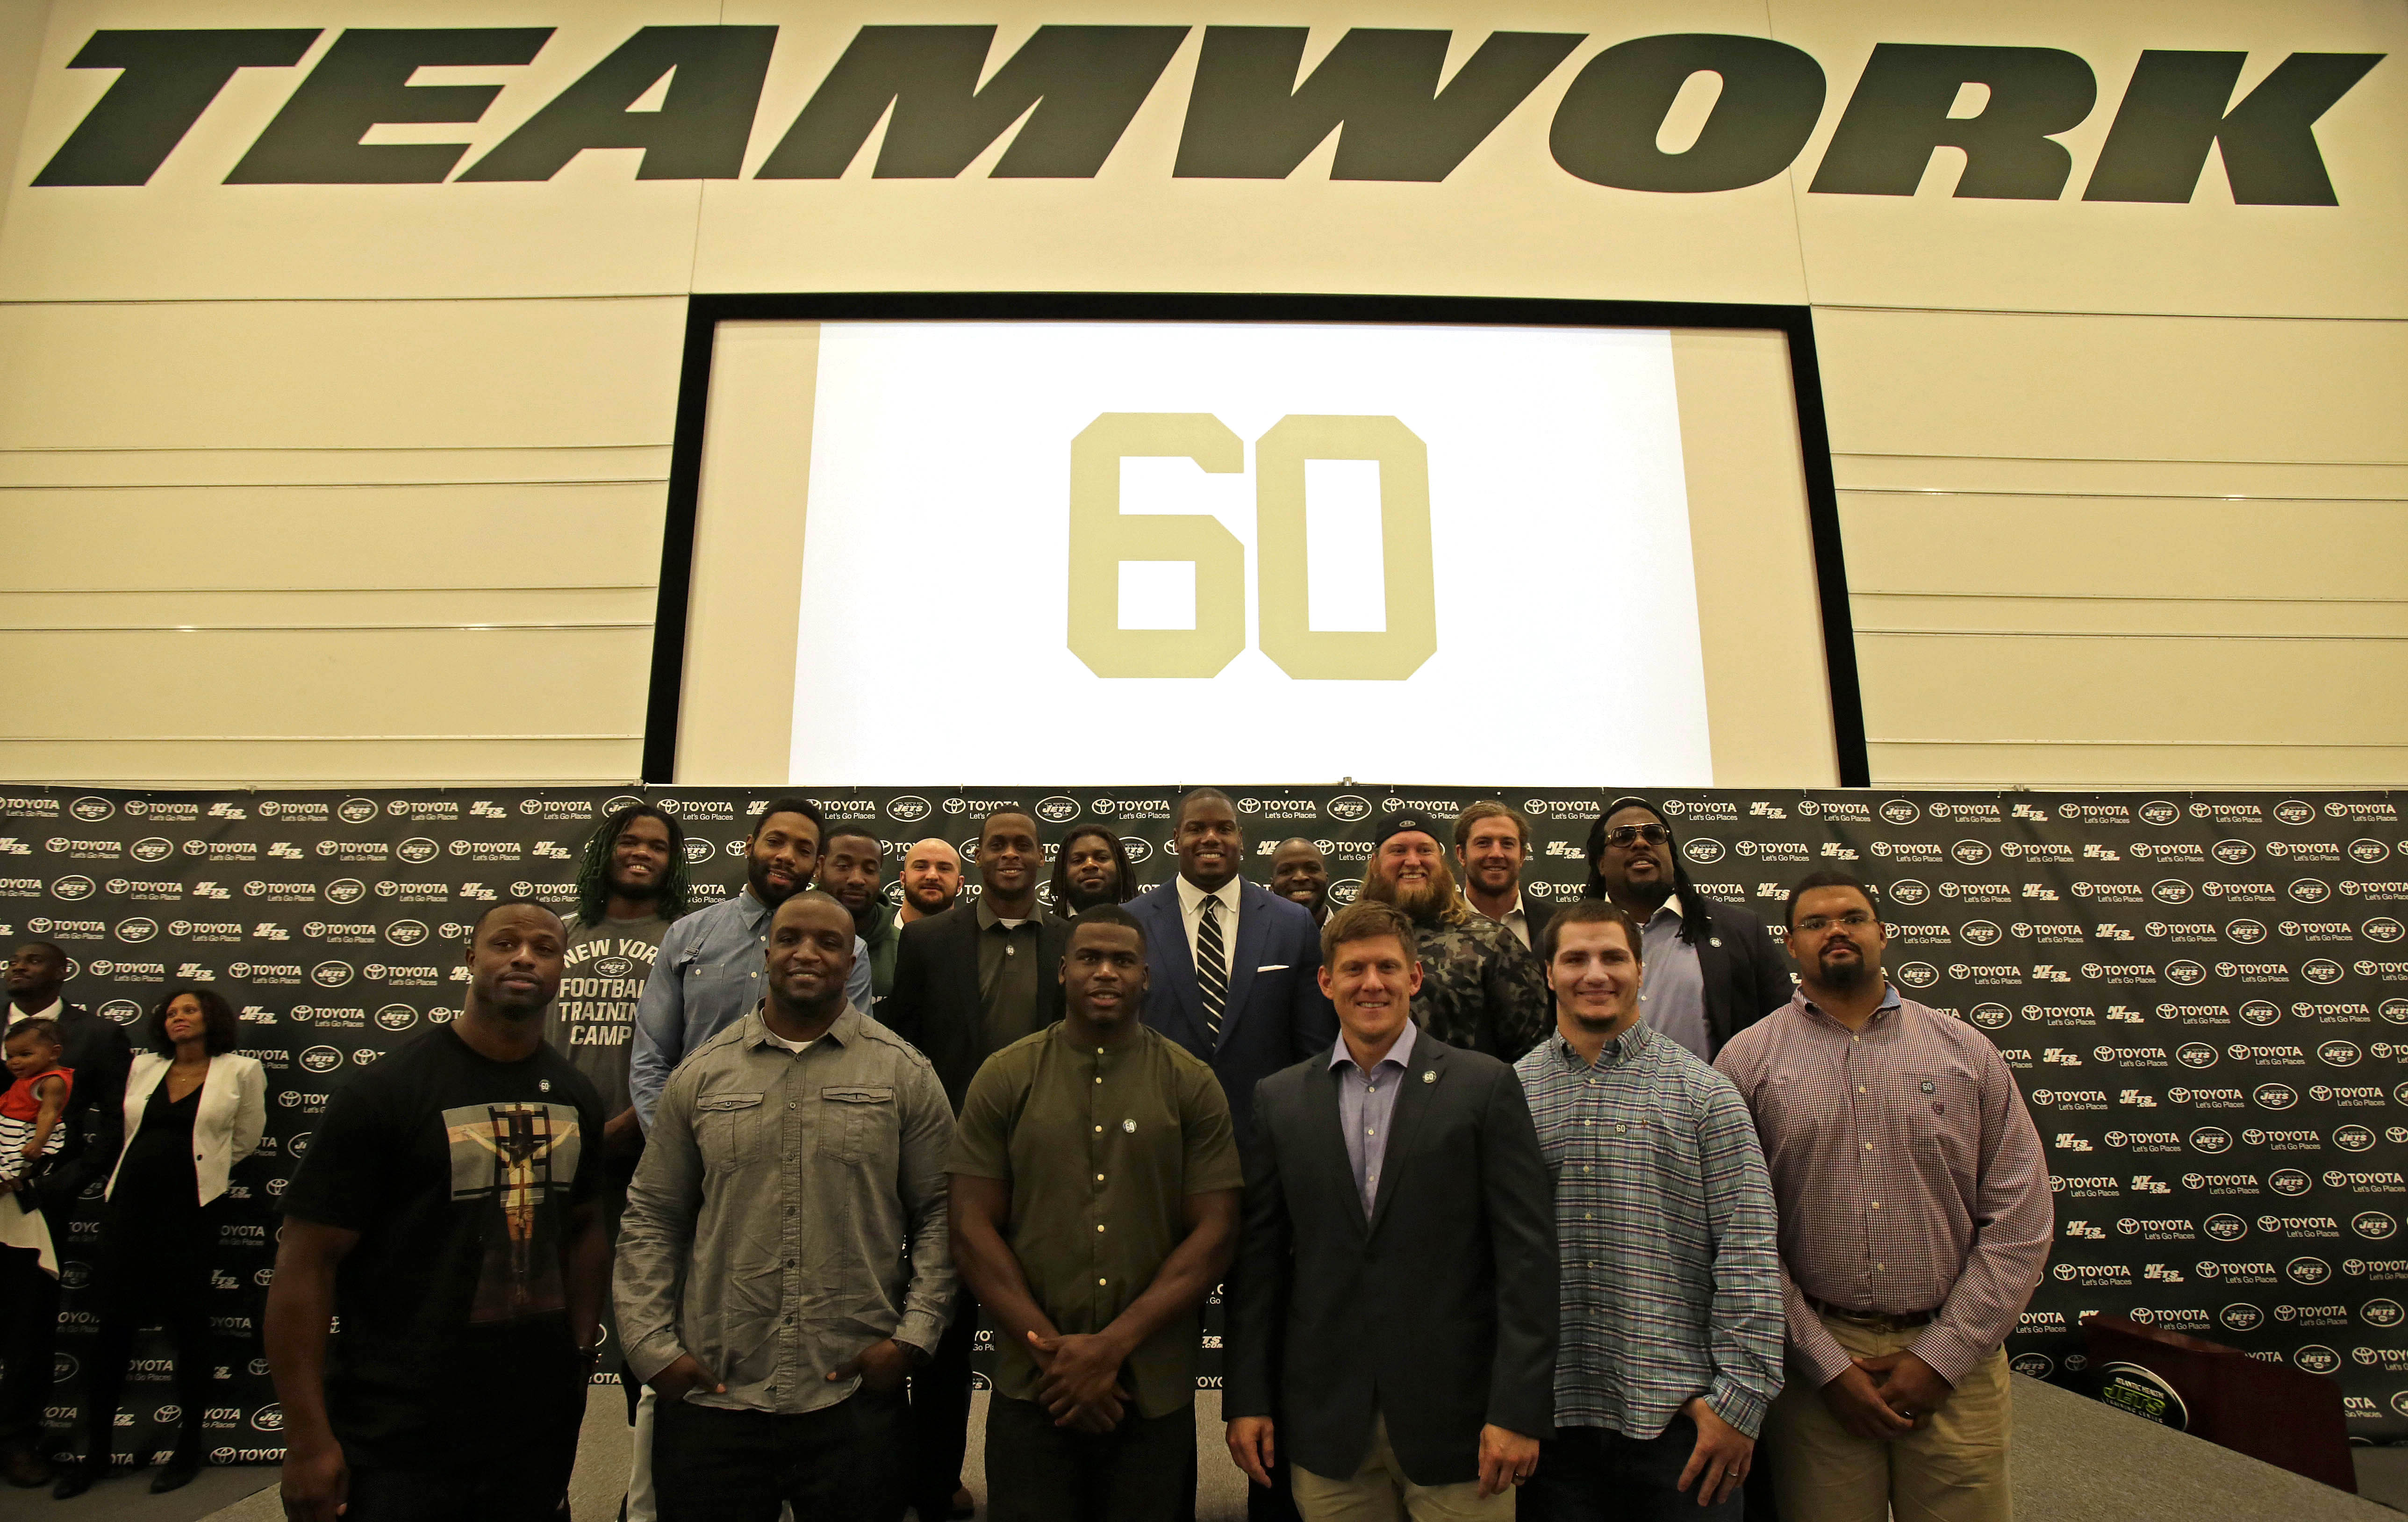 New York Jets' D'Brickashaw Ferguson (center blue suit) poses for a photo with former teammates after a press conference about retiring on Thursday, April 14, 2016 at the team's practice facility in Florham Park, N.J. (AP Photo/Adam Hunger)